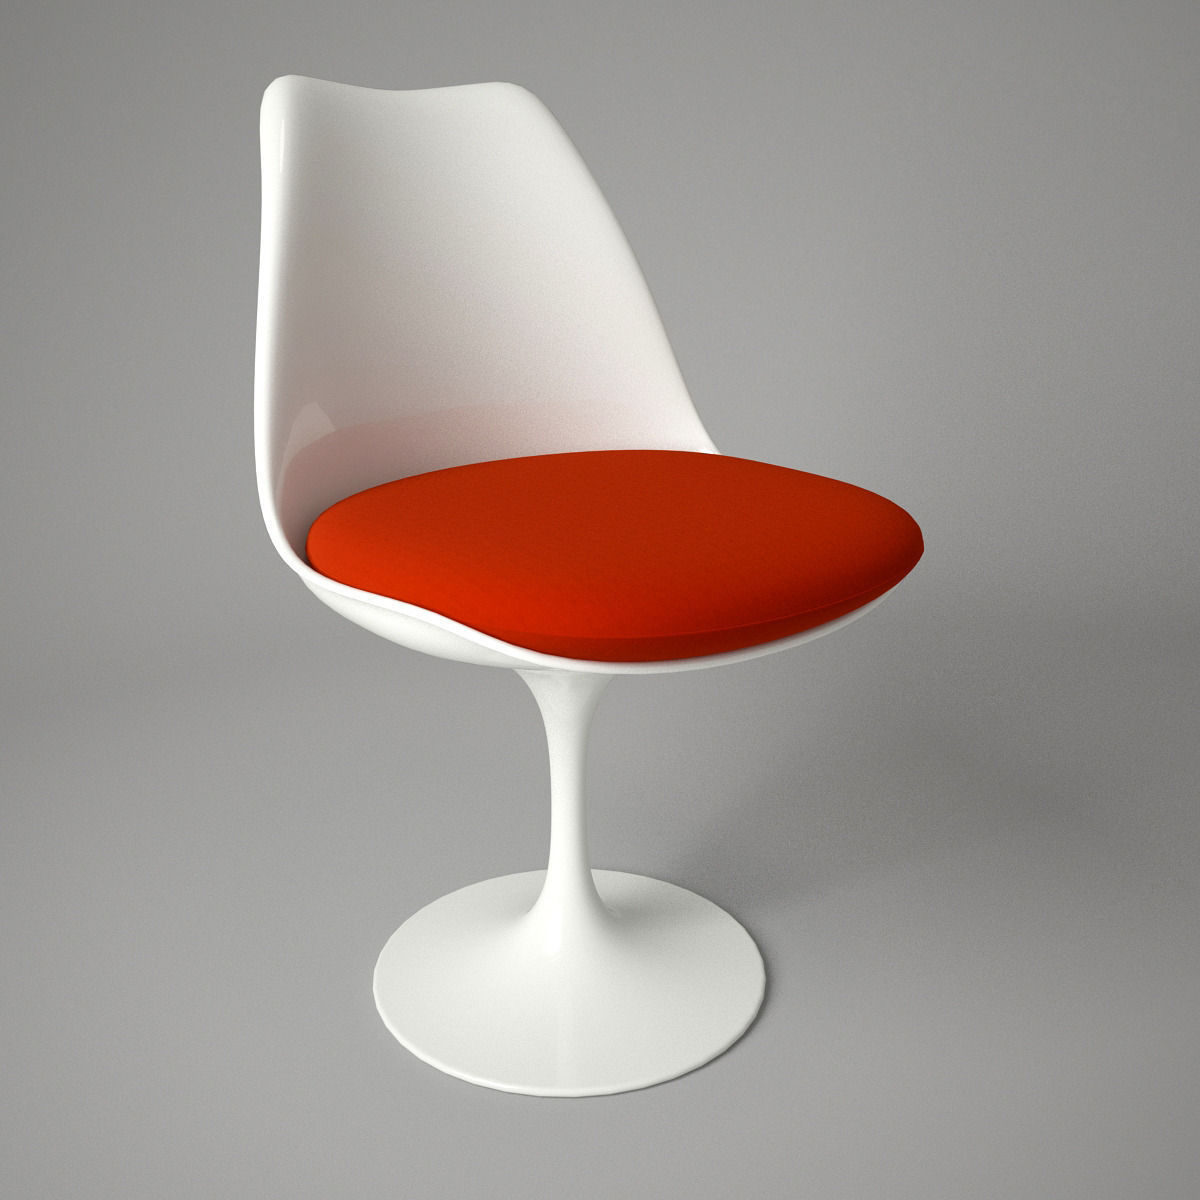 Charmant ... Tulip Chair And Armchair 3d Model Max Obj Fbx 3 ...